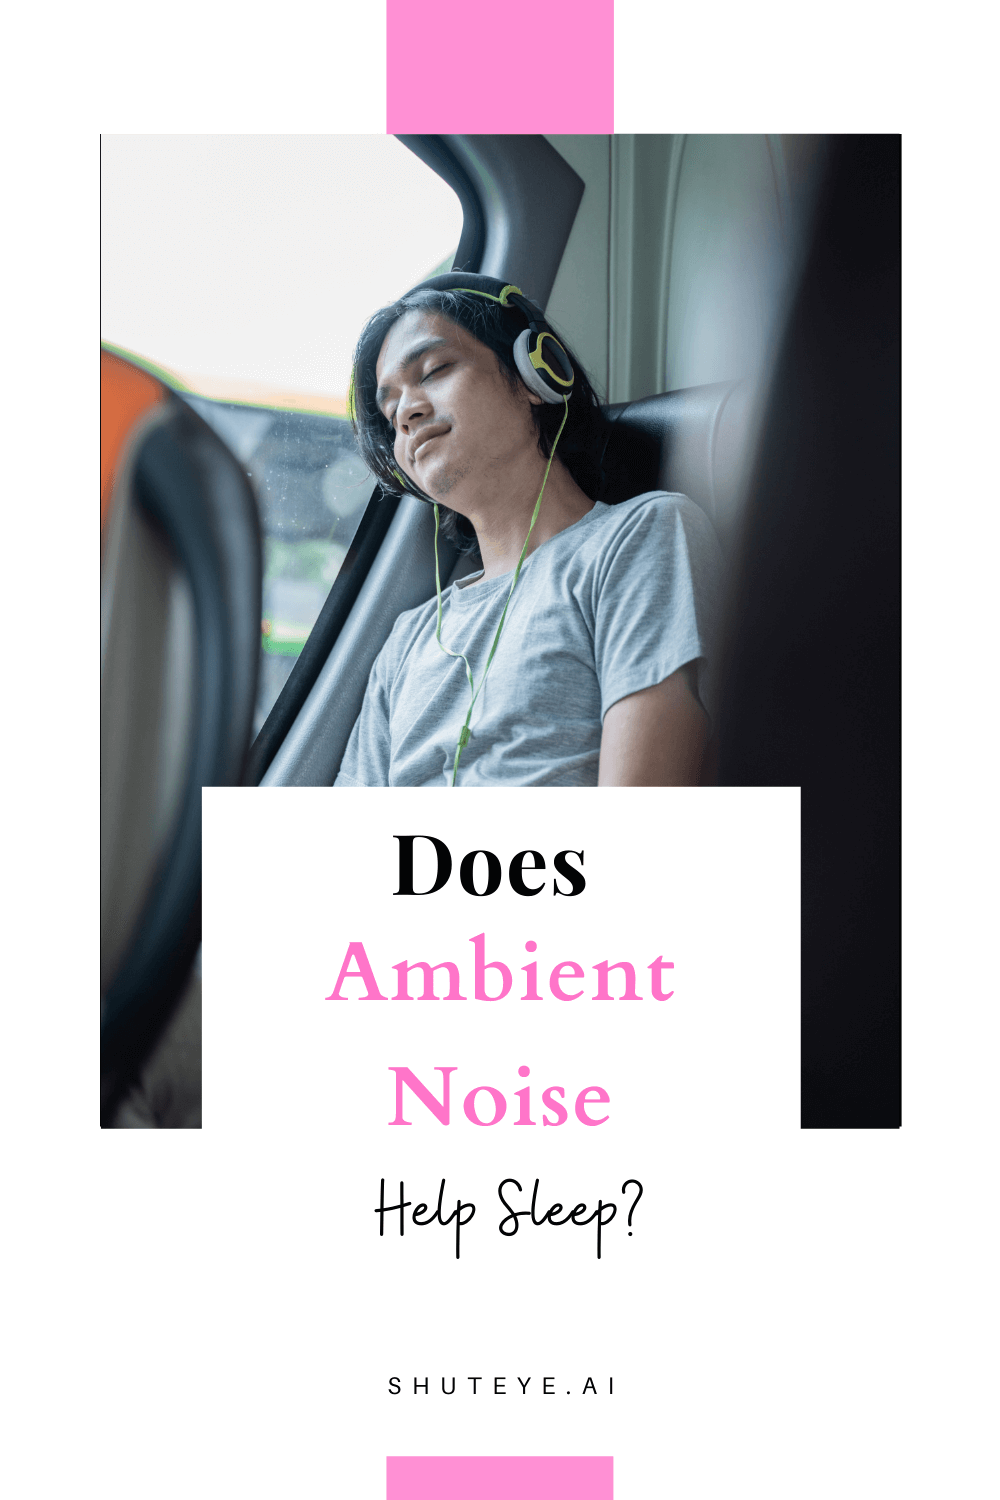 Does ambient noise help sleep?